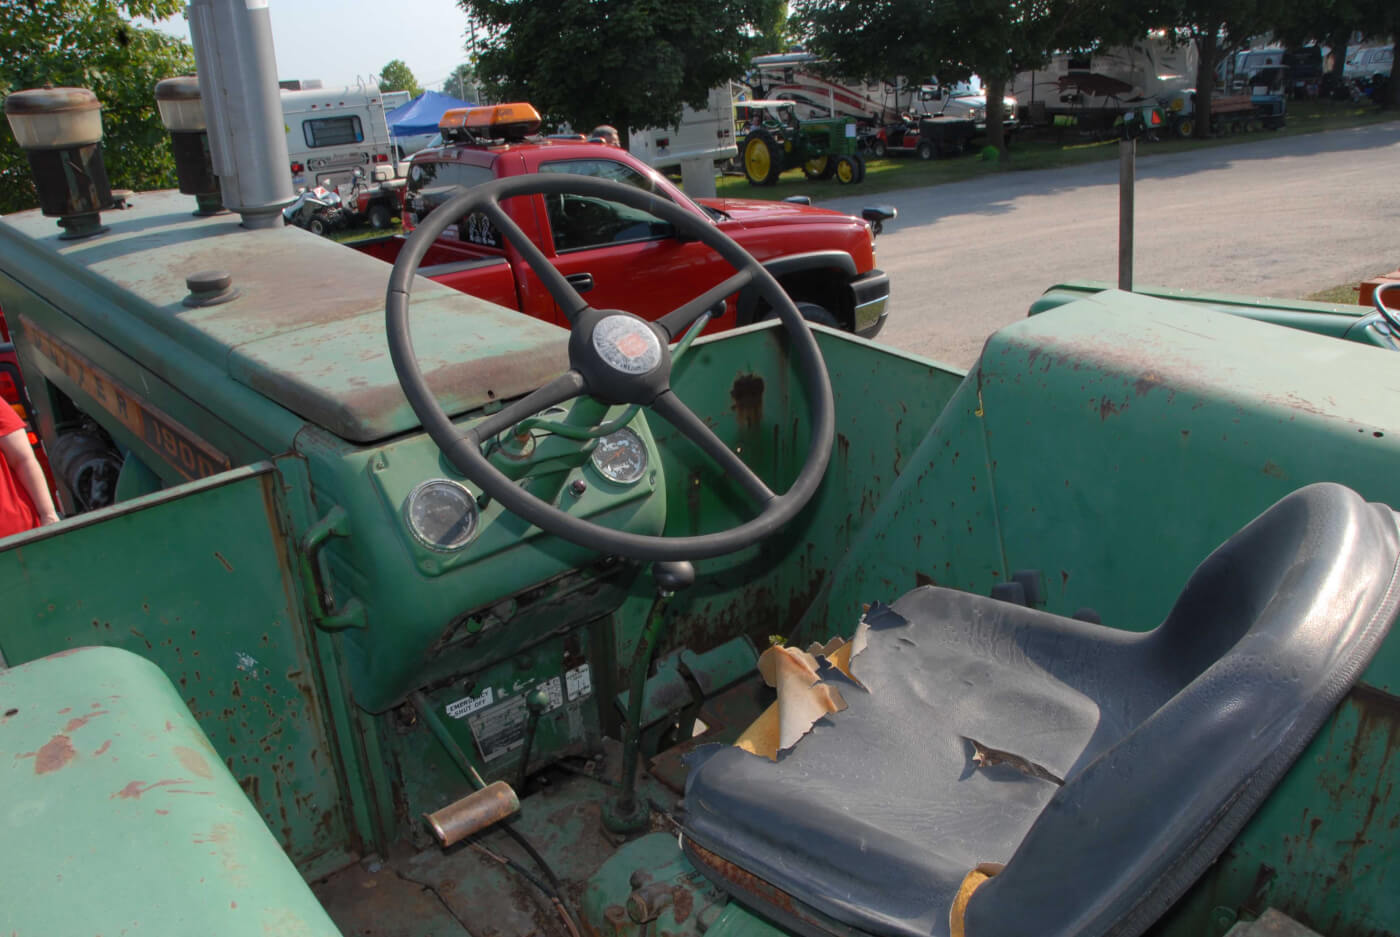 Tractor Talk: Jimmy Screamin' at Ollie—1963 Oliver 1900 GM 4×4